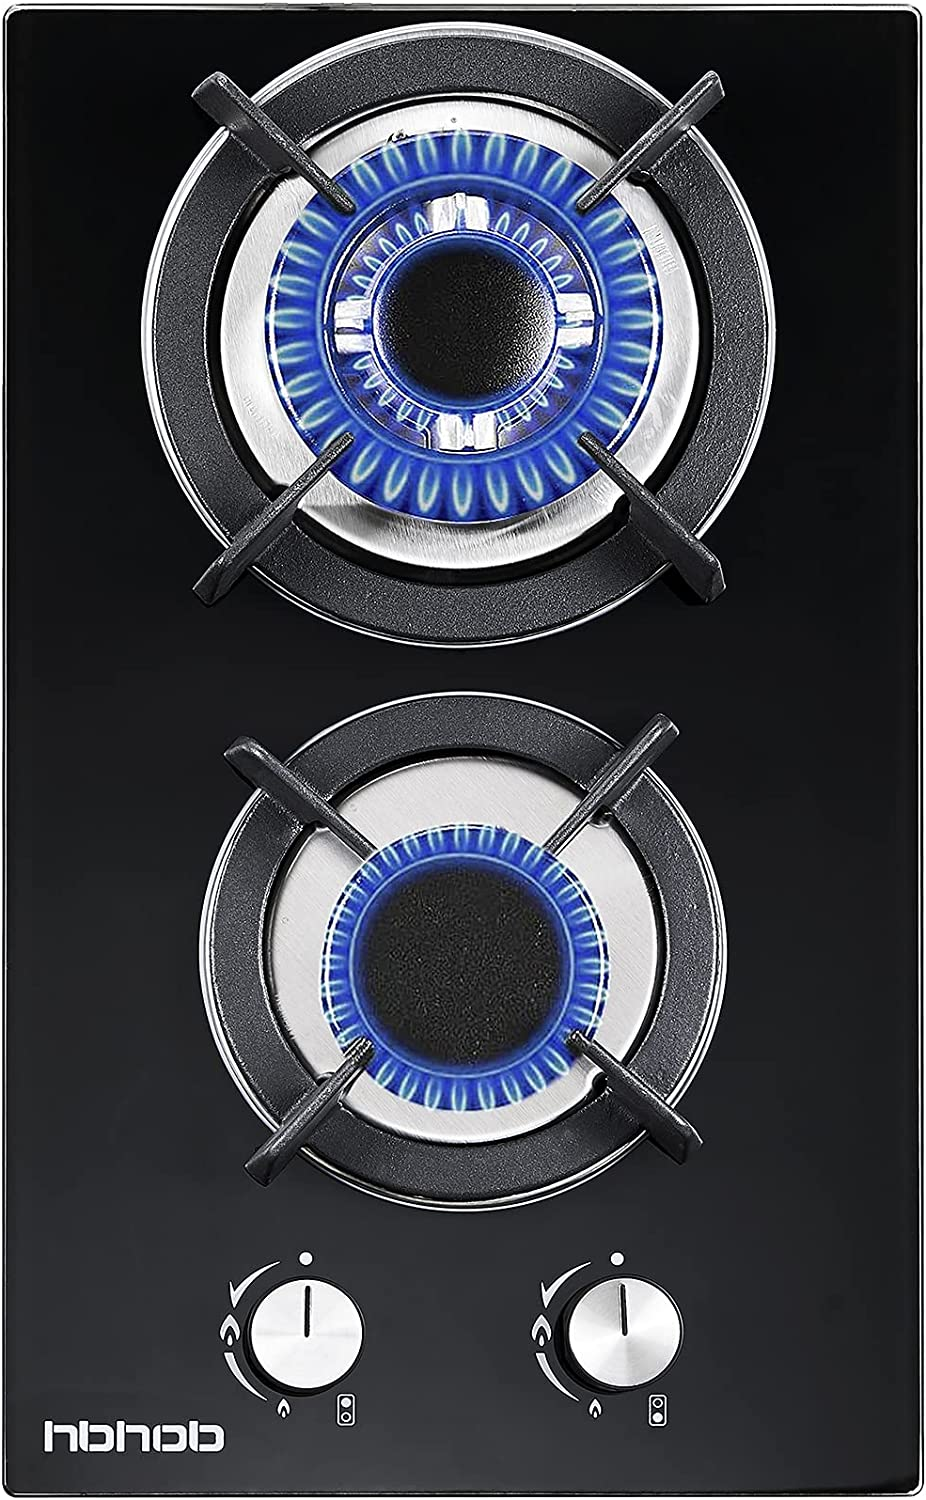 Gas Cooktop HBHOB Dual Fuel Sealed 2 Burners Gas Hob 12 Inch Tempered Glass Gas Cooker,Built-in Gas Stove Top Thermocouple Protection and Easy to Clean Black